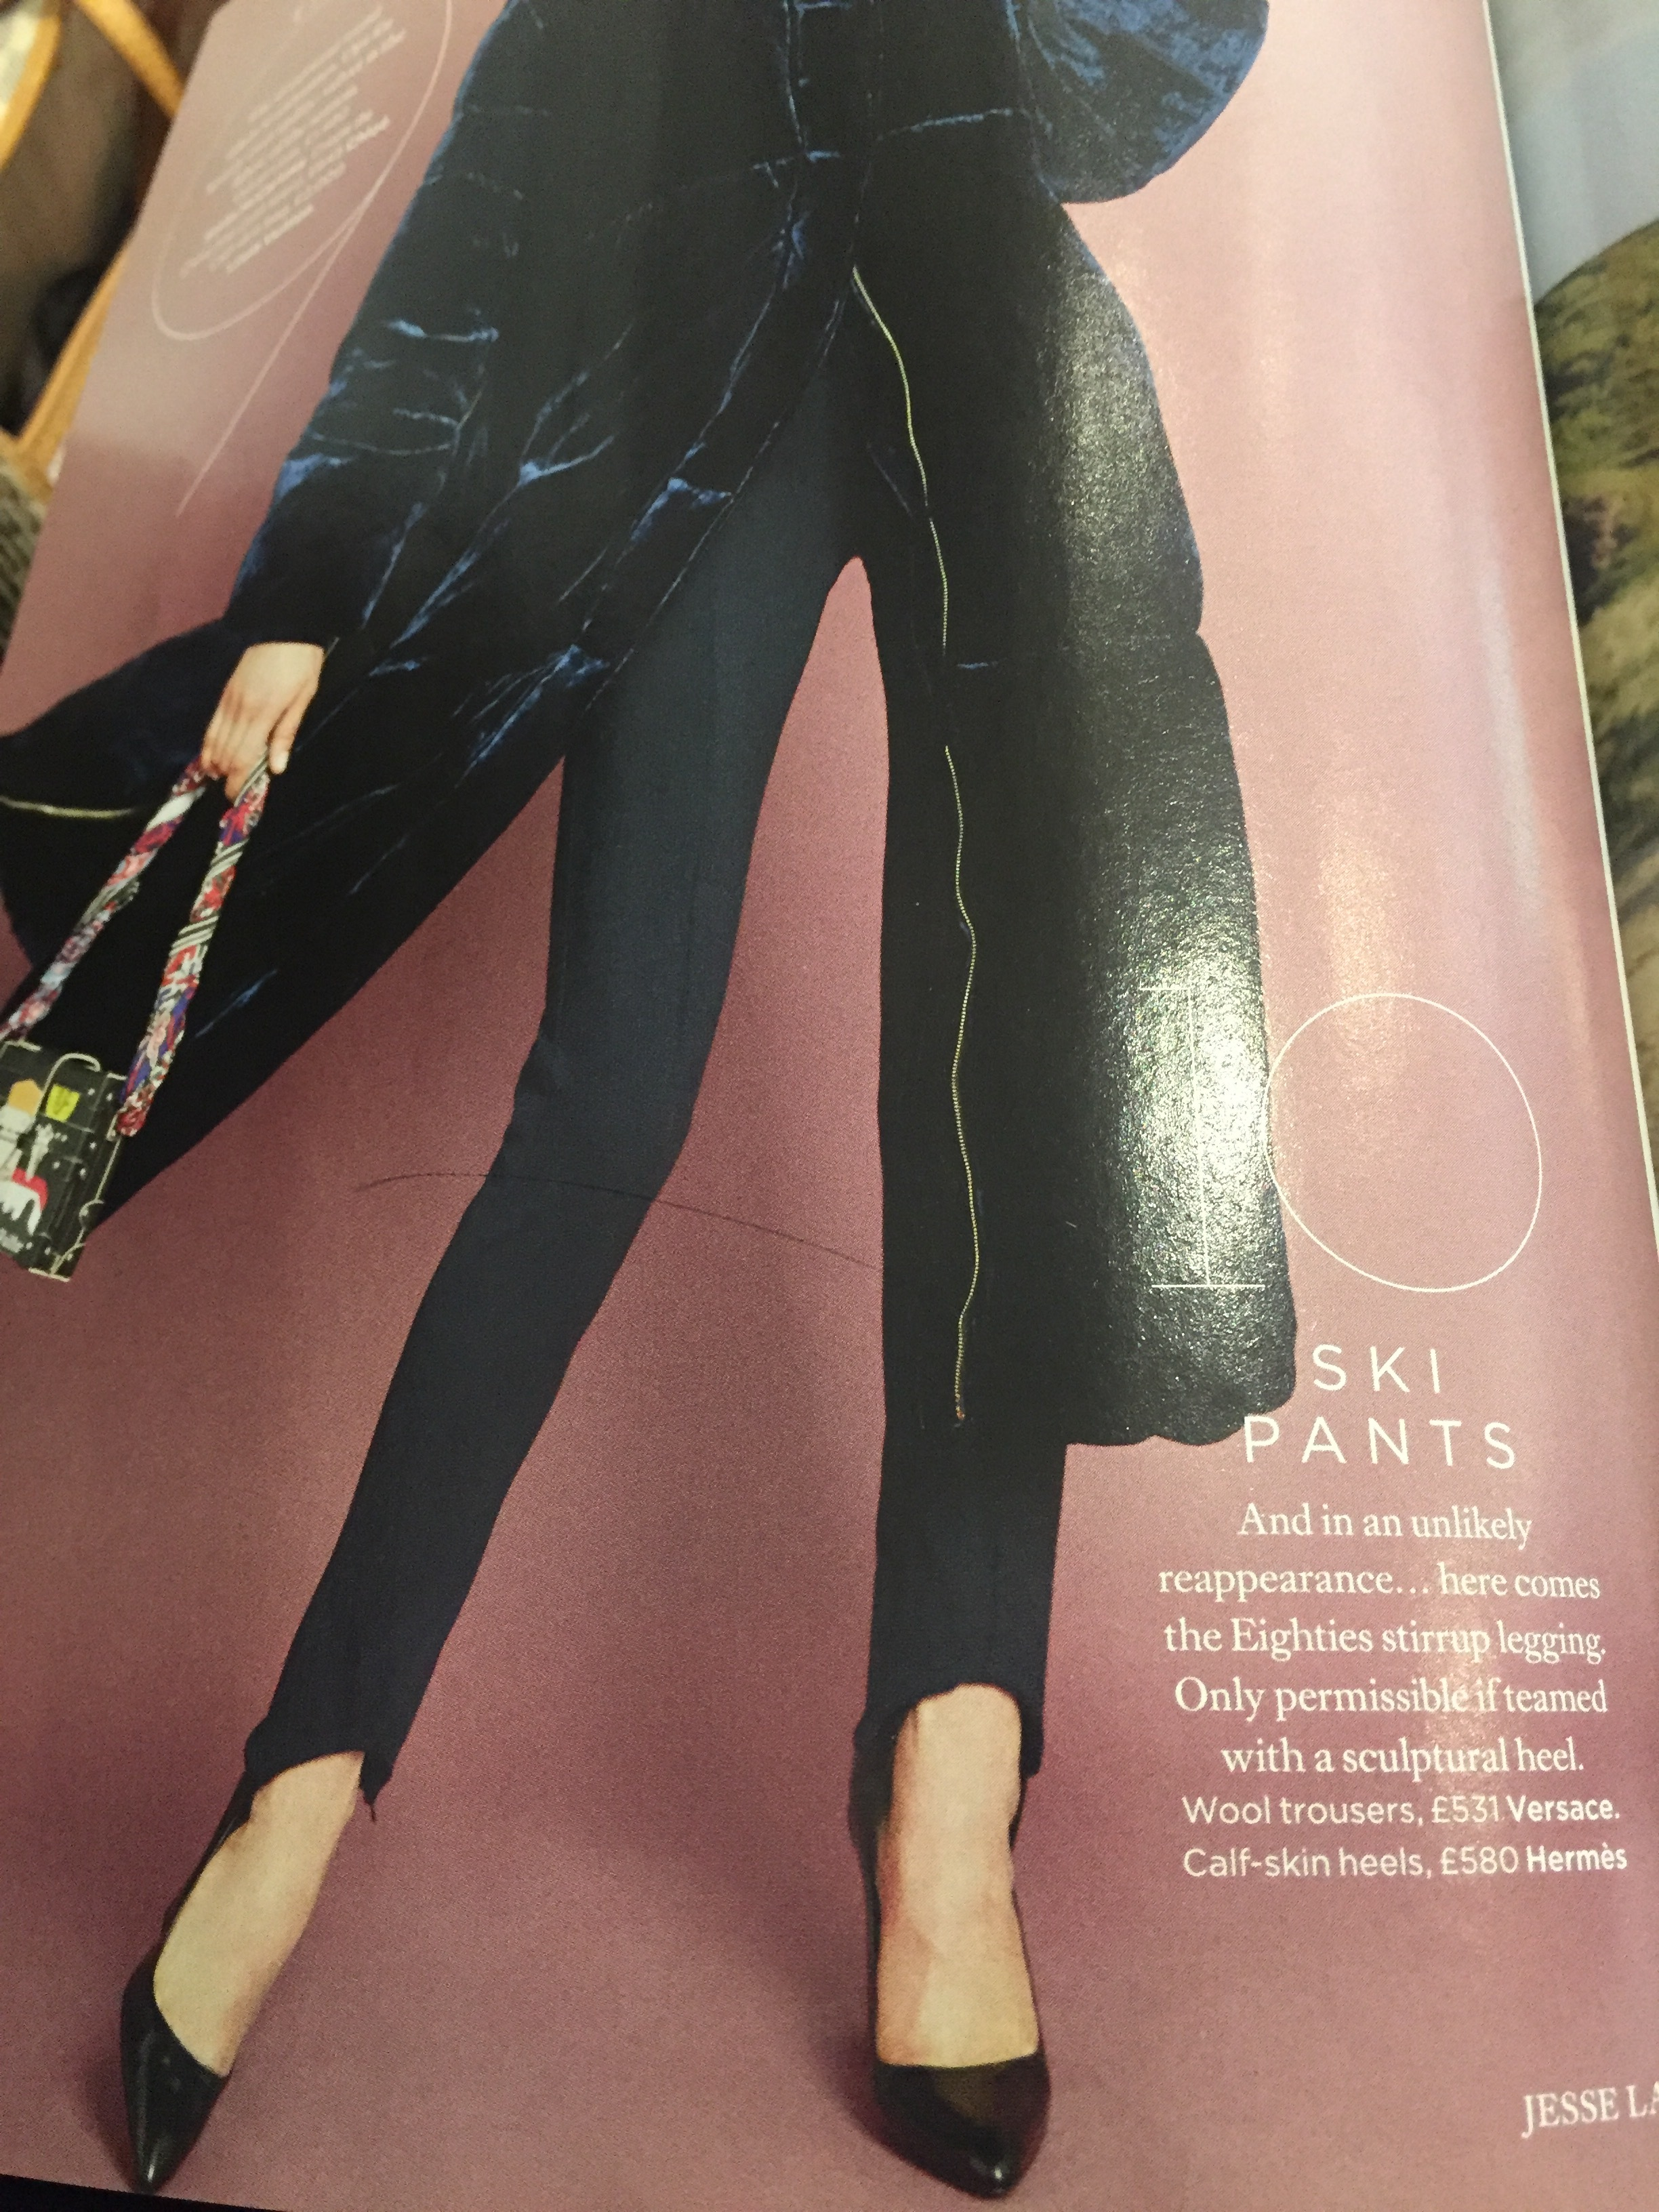 FYI ladies, it's hard to believe they're back with a vengeance but I saw this in Harper's Bazaar or Elle, I forget which one now but ski pants are back!! Handy for us as they were alway super stretchy from what I recall of the eighties icon!